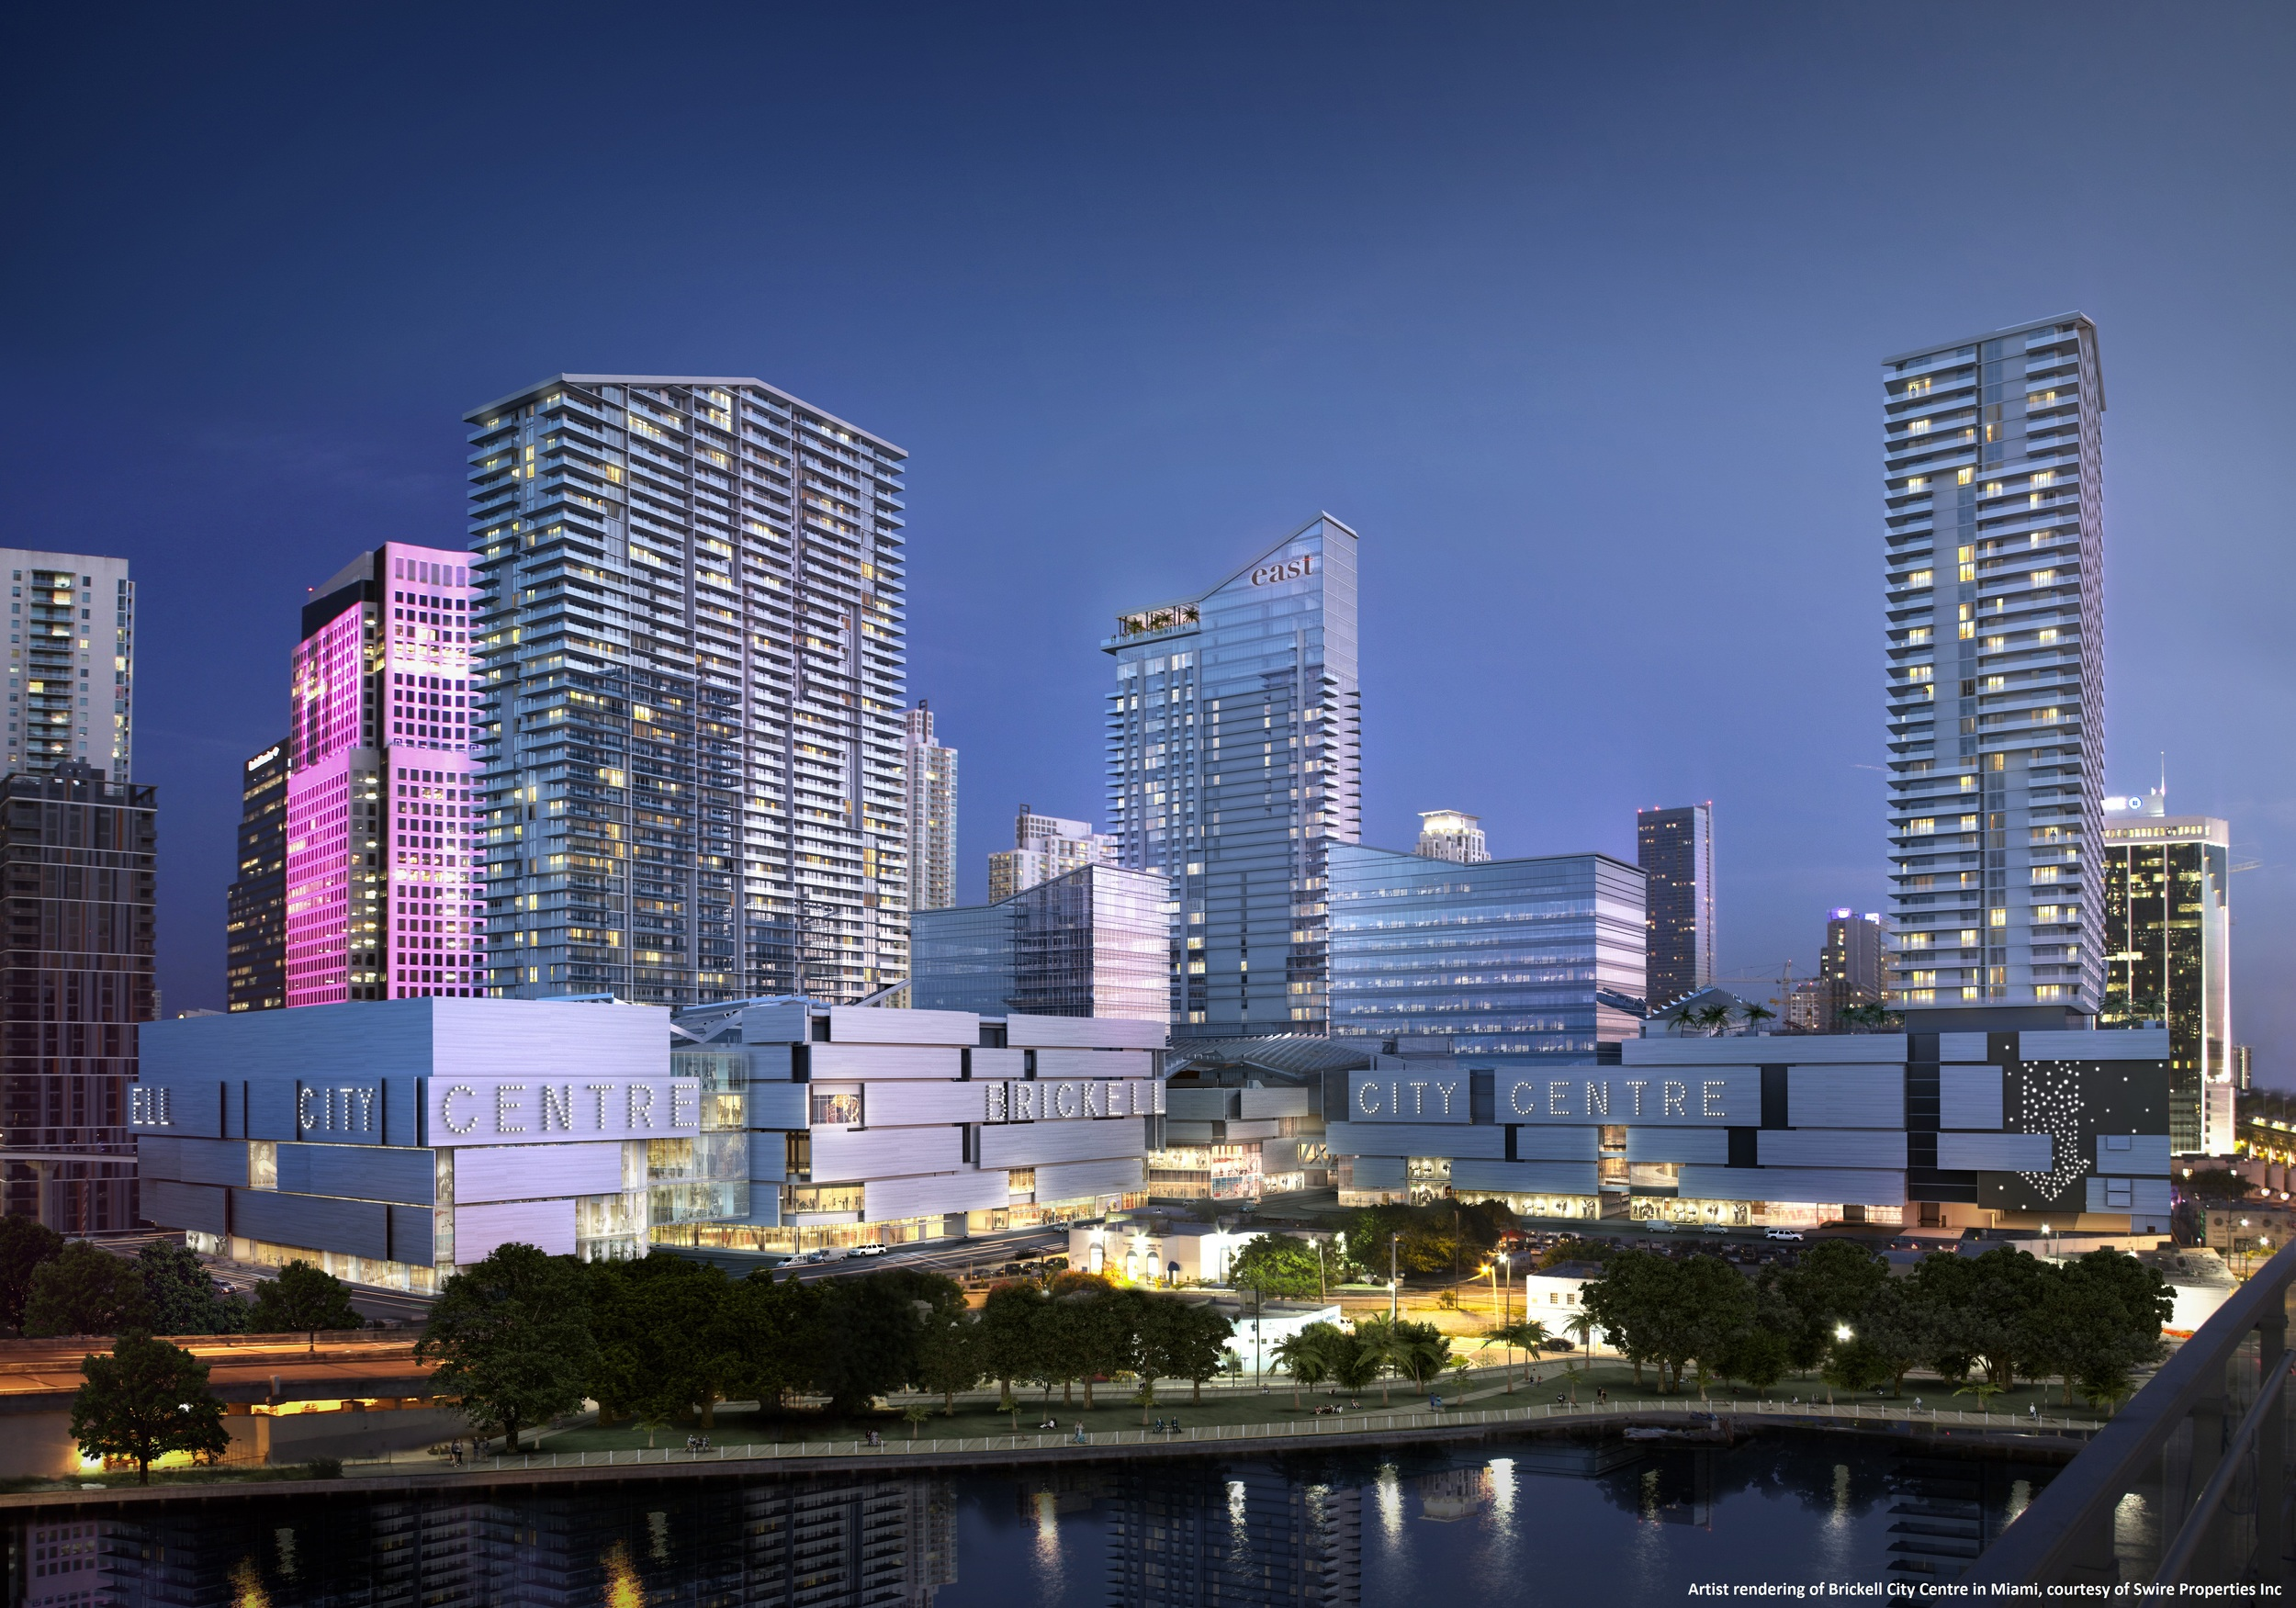 Swire Properties,Brickell City Centre is set to import a Hong Kong-style urbanism to south Florida